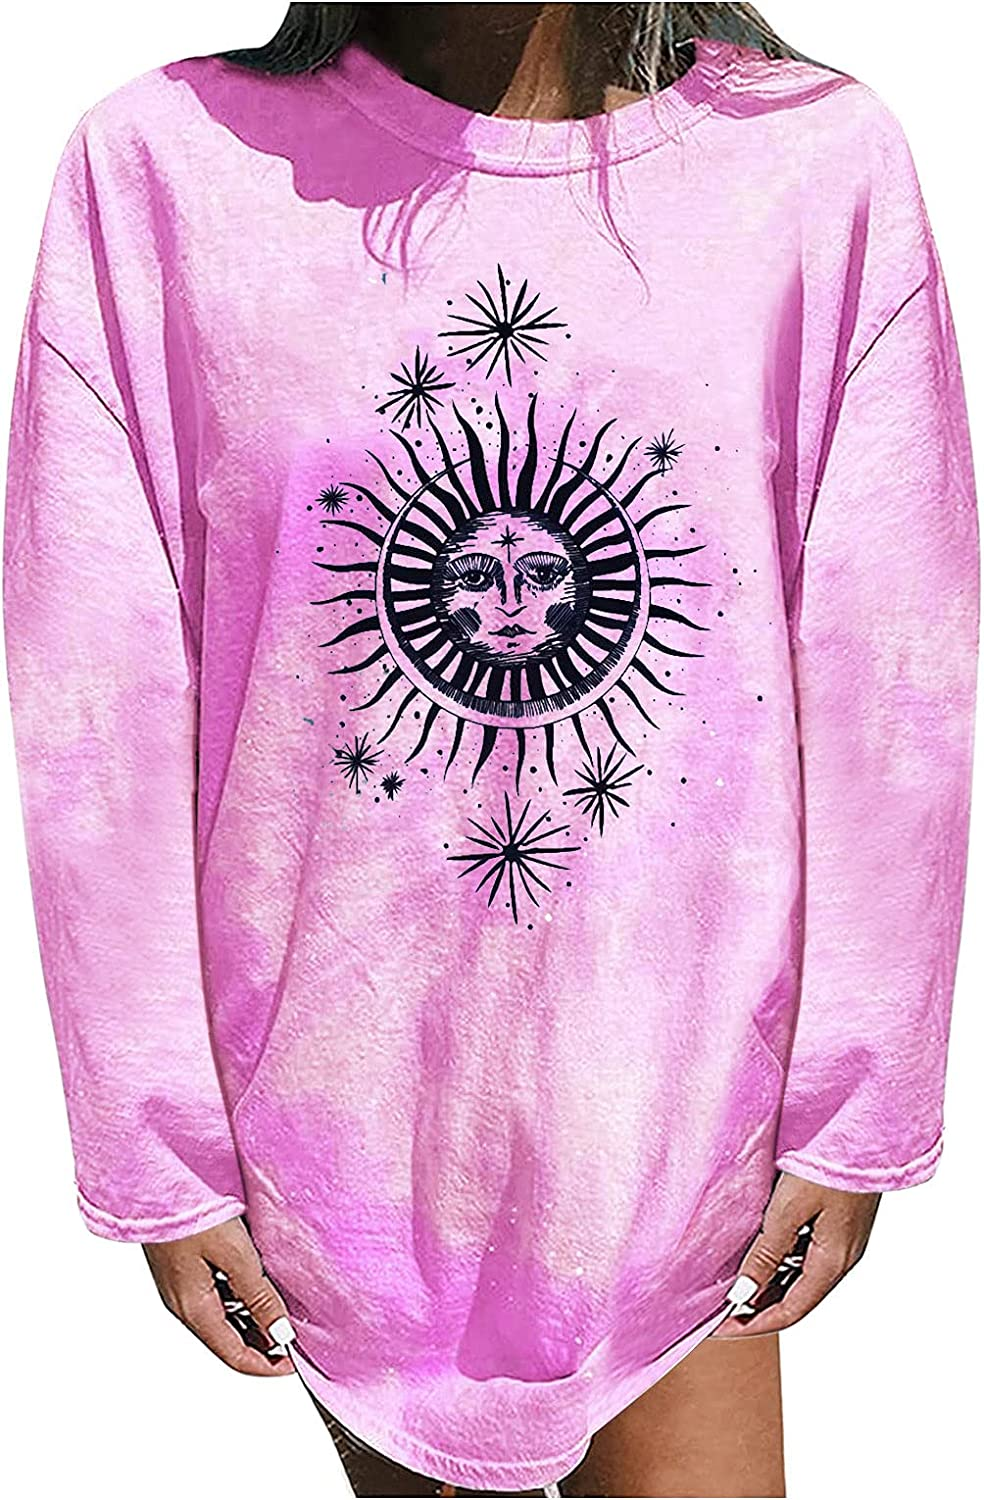 Women Sun and Moon Tie Dye T-Shirt Round Neck Long Sleeve Tops Pullovers Casual Funny Cute Teen Girl Tee Fall